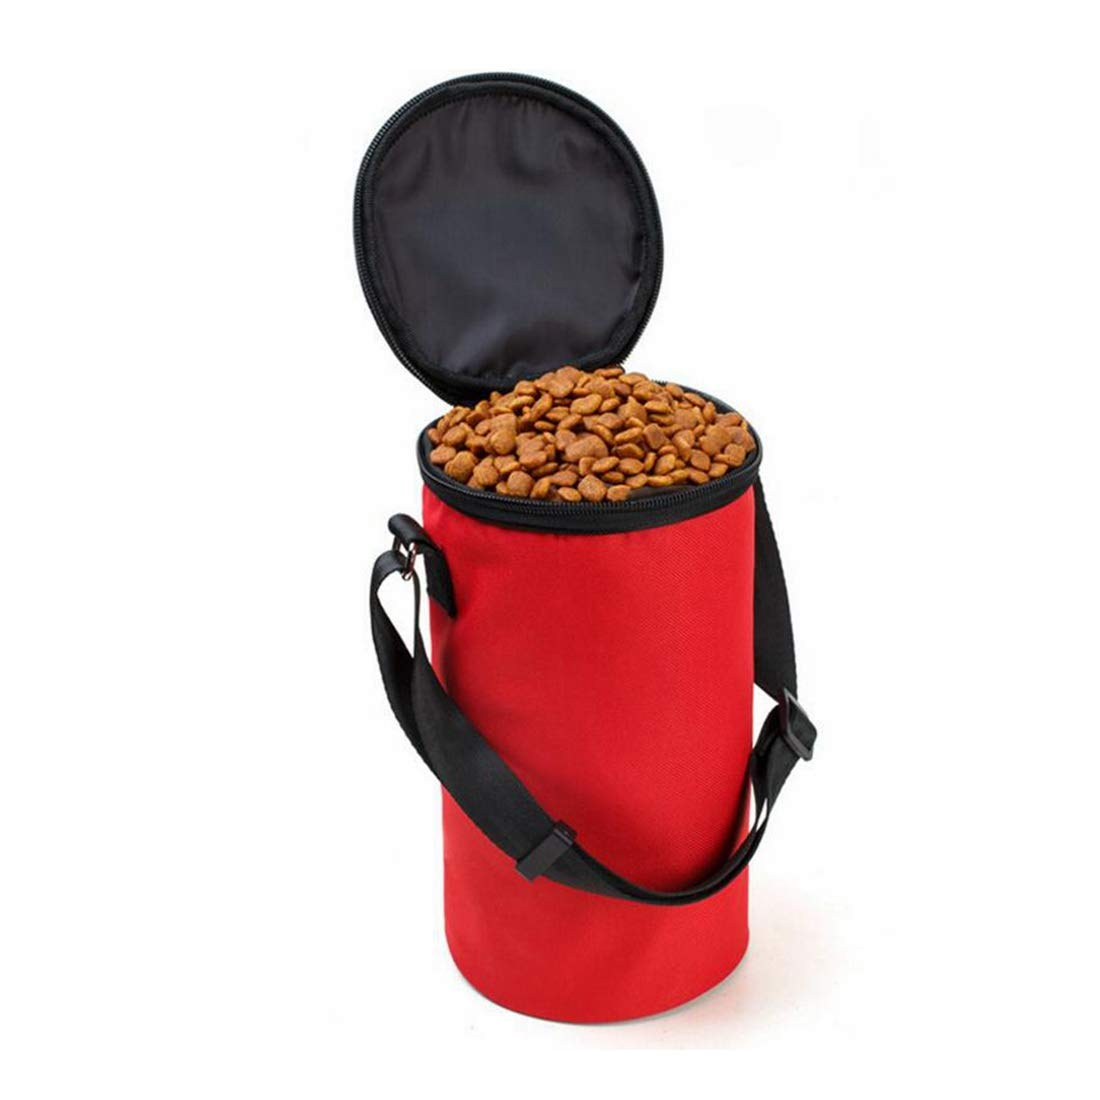 Red KTYX Pet Supplies Cats and Dogs Out Travel Portable Dog Food Bags Collapsible Firm Wear-Resistant Waterproof Oxford Cloth Pet Bowl (color   RED)